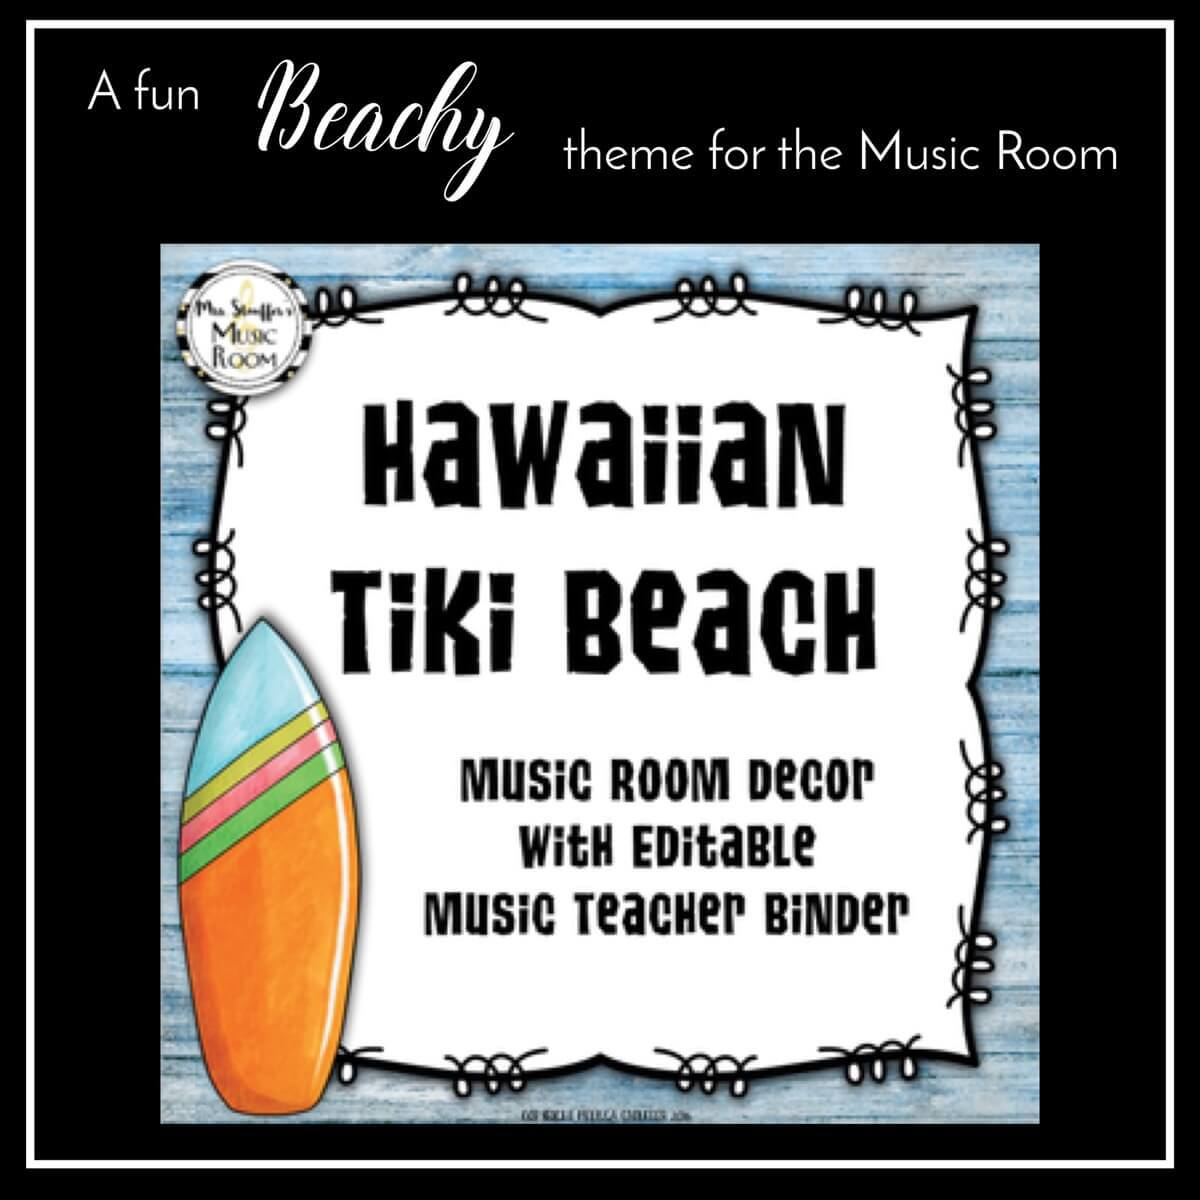 Hawaiian Tiki Beach Music Room Decor